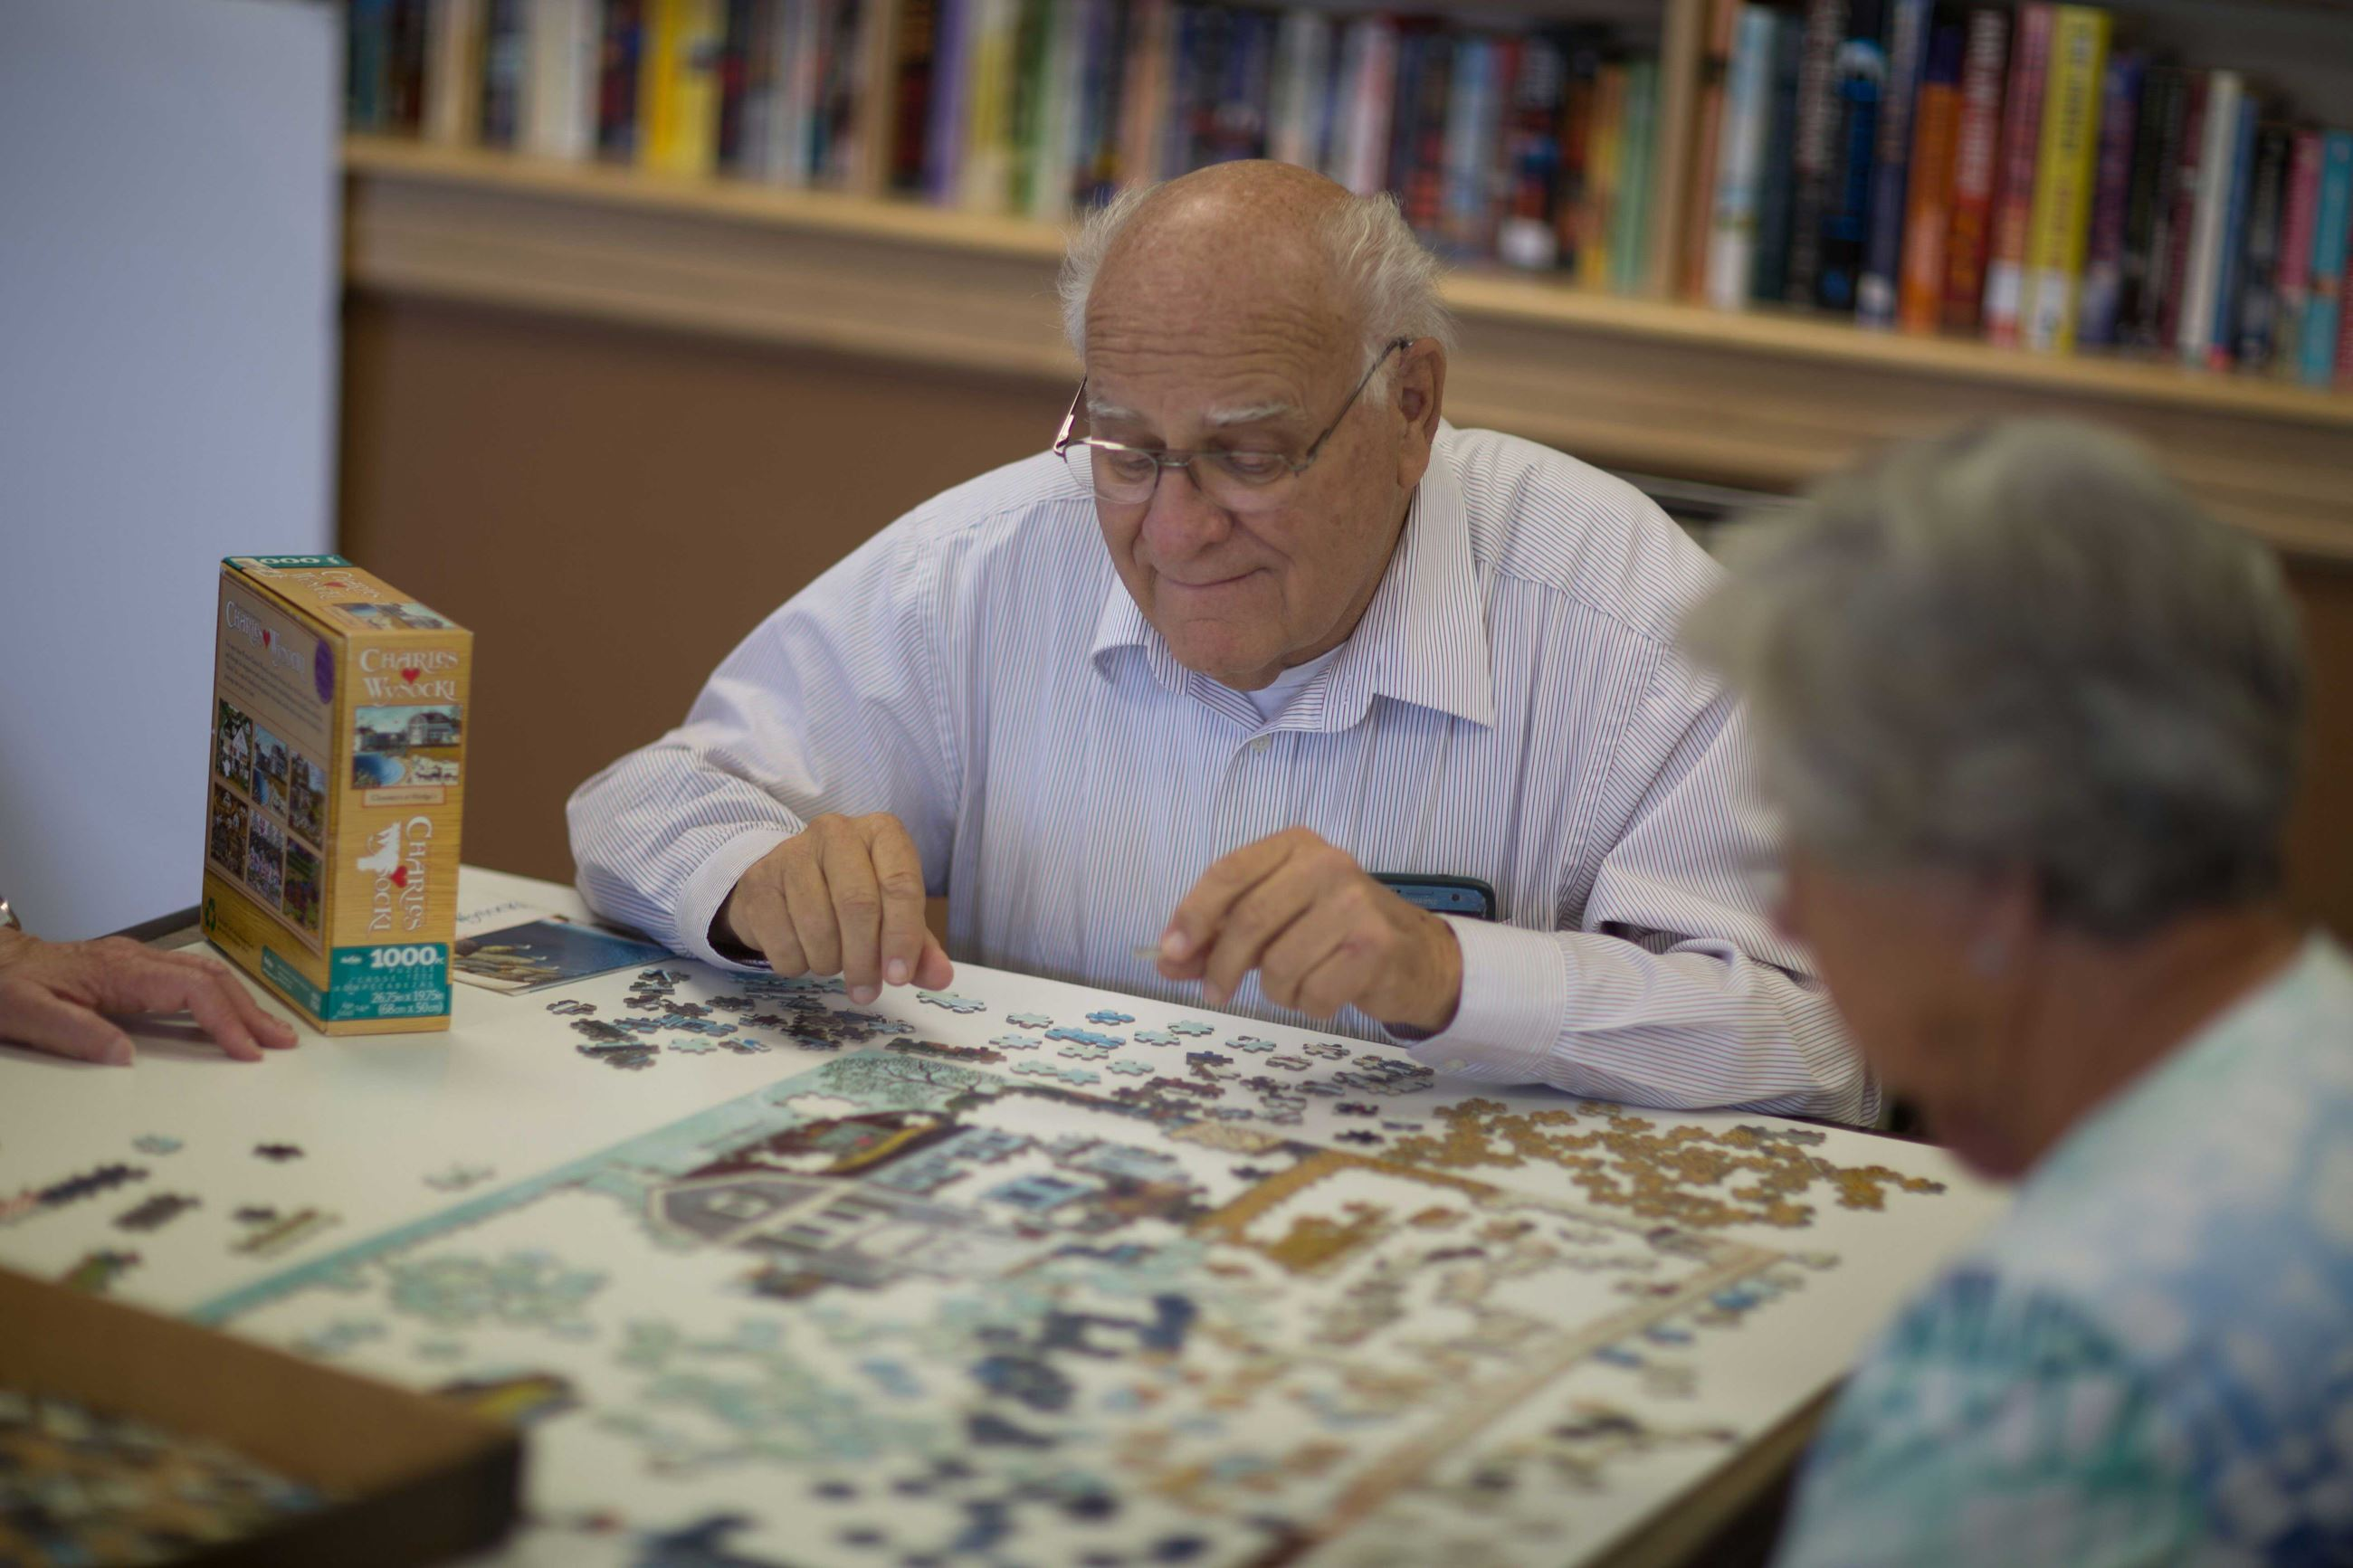 Senior male putting a puzzle together at a table in the Senior Center.